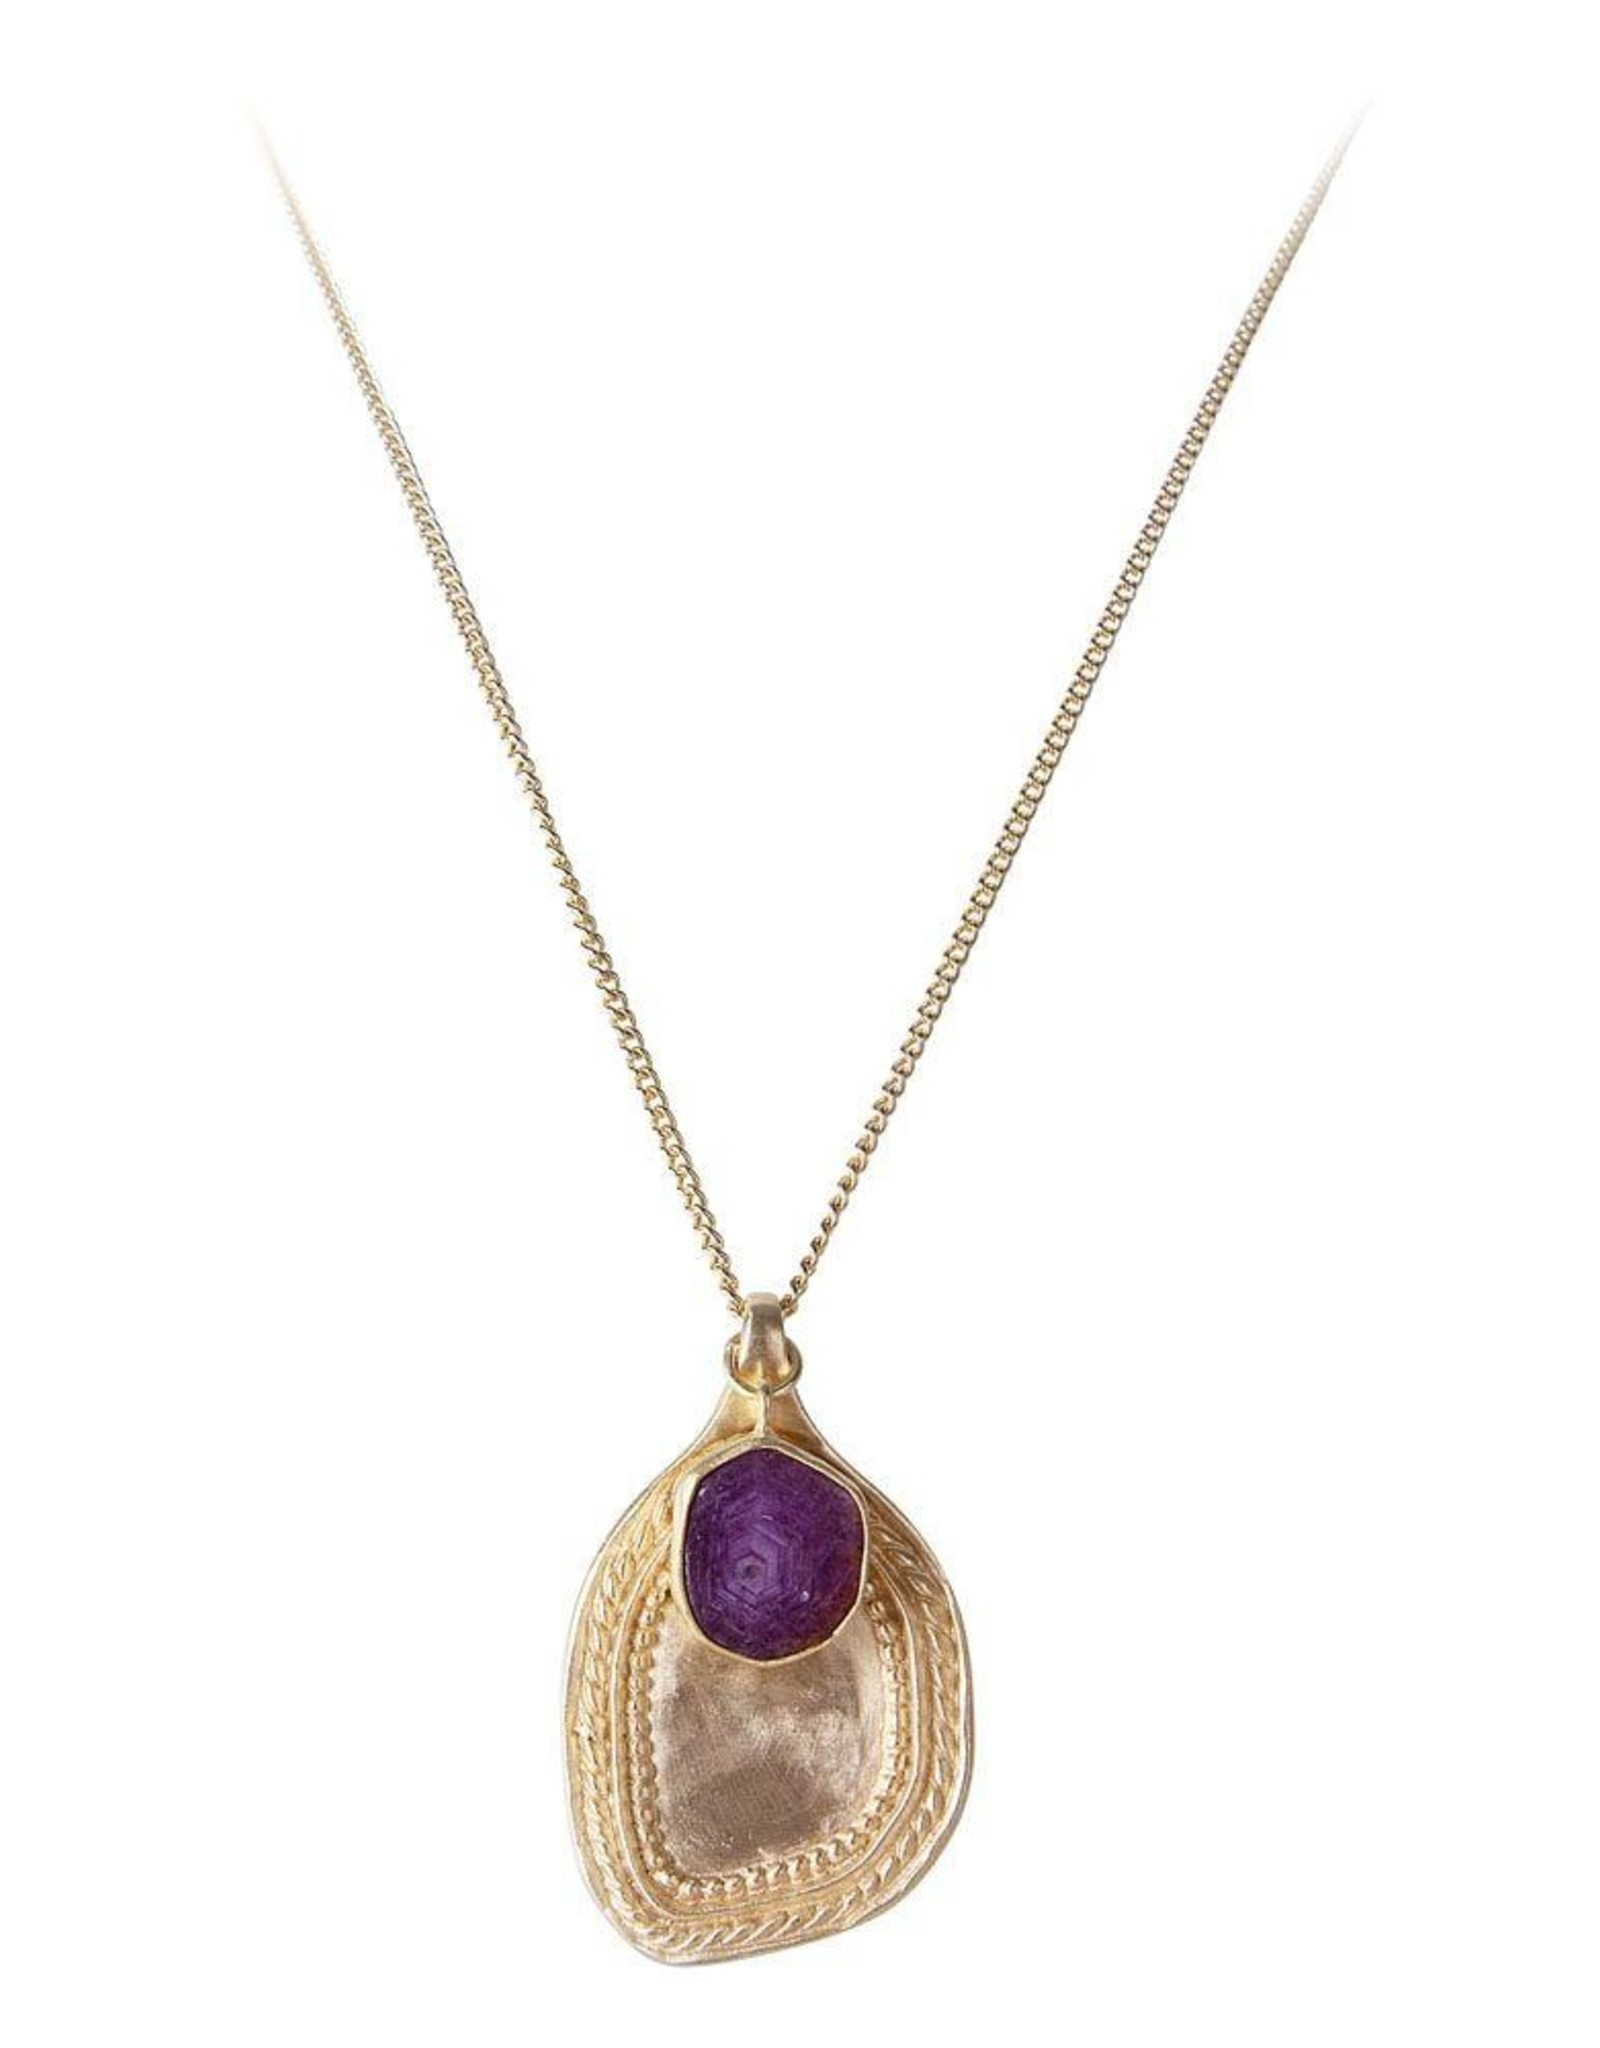 FAIRLEY RUBY PENDANT NECKLACE